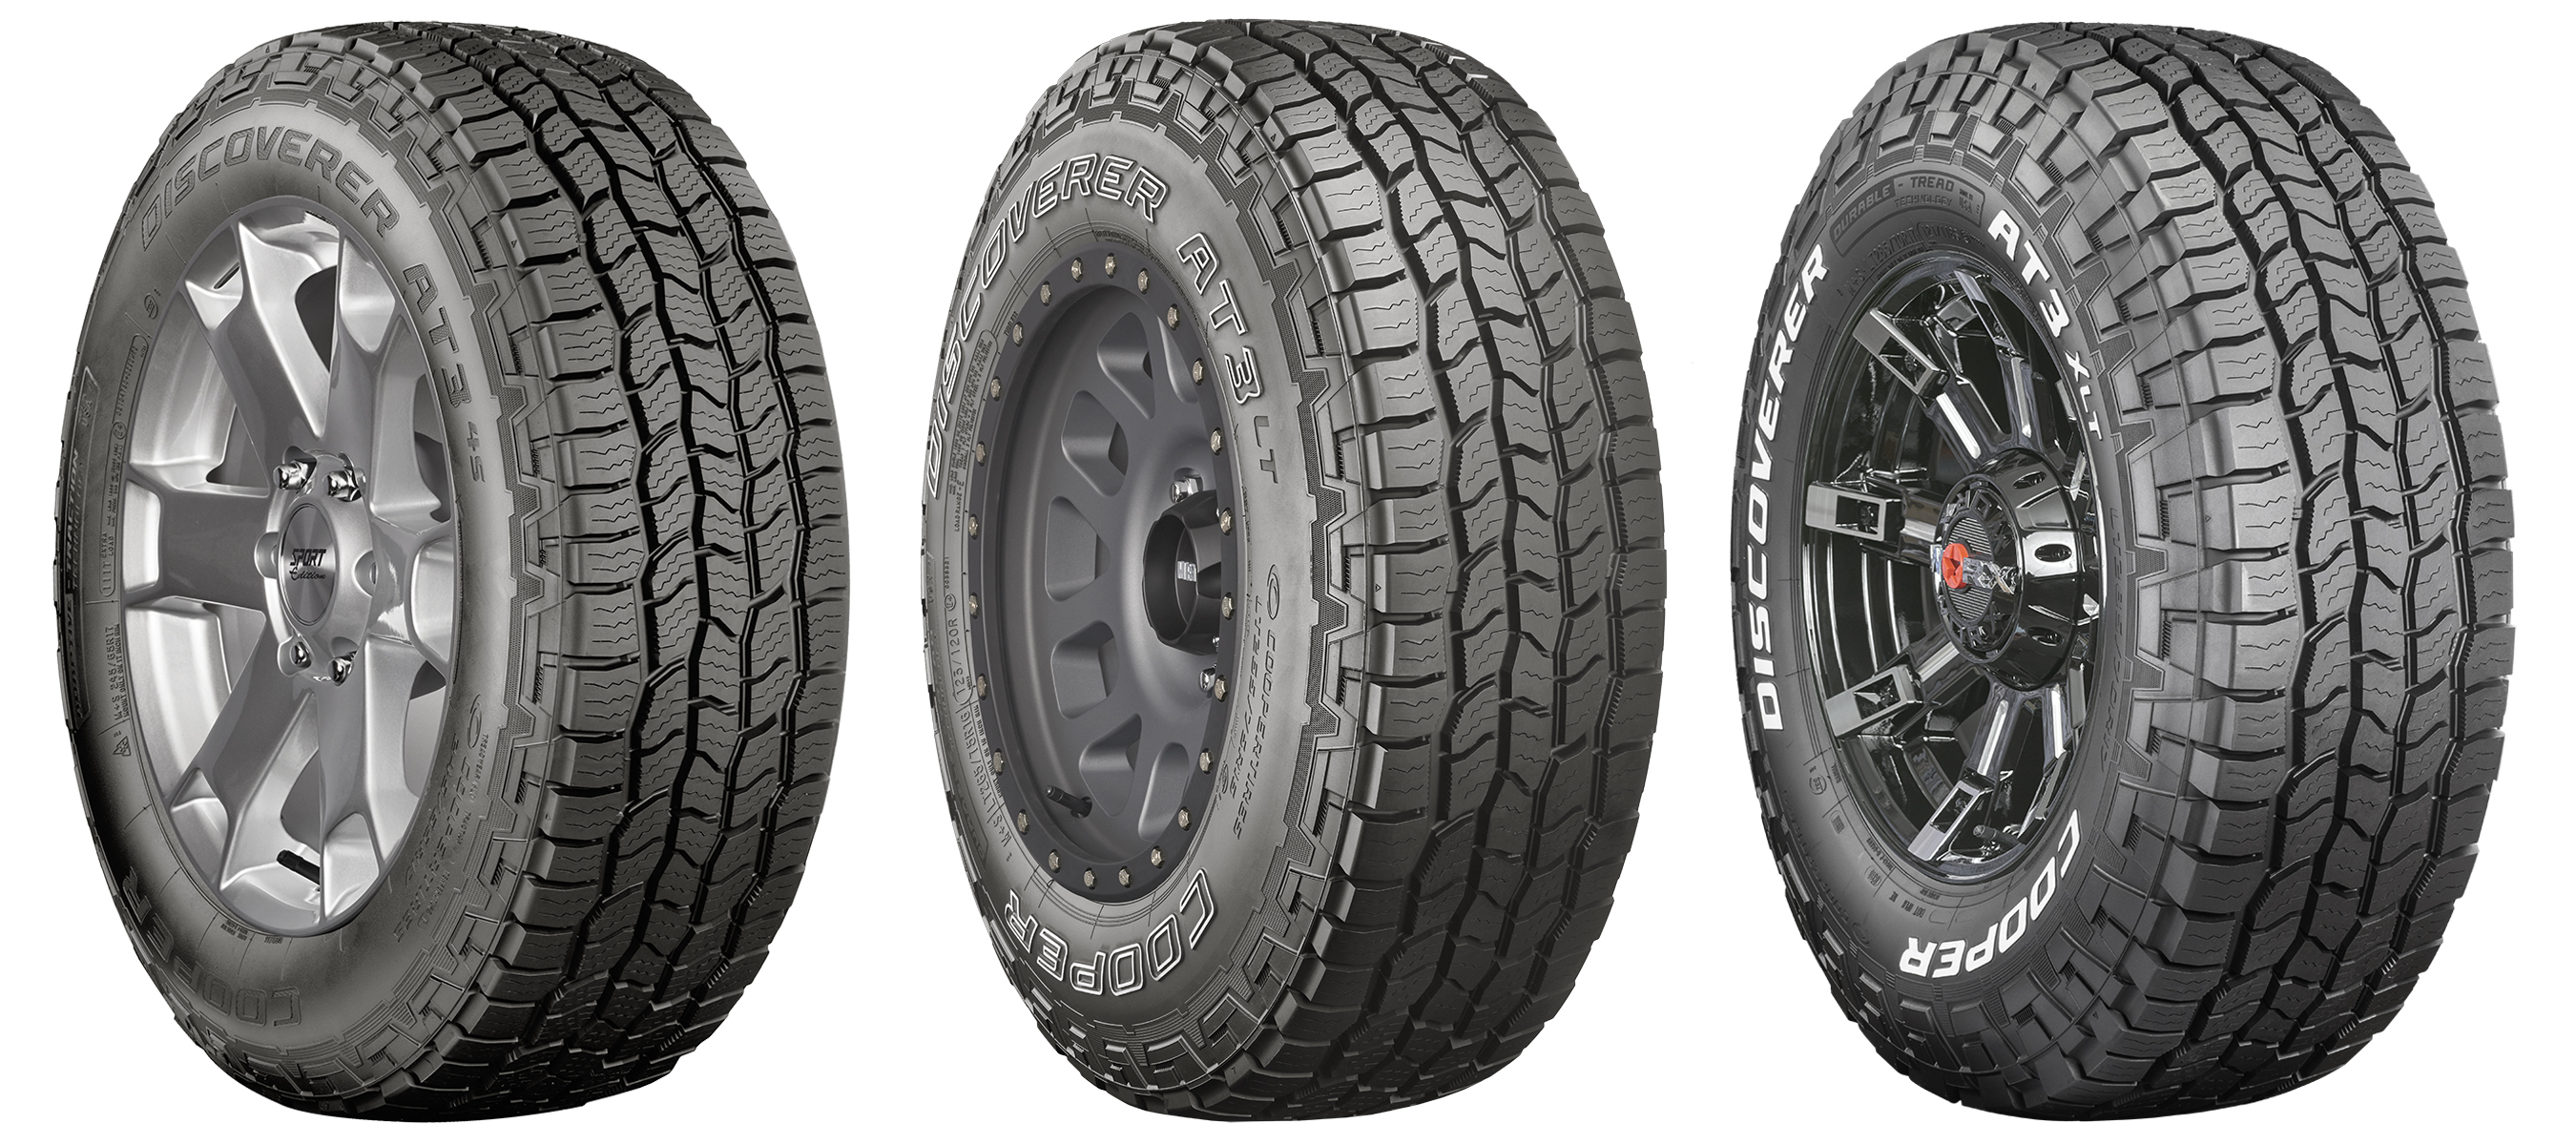 New Cooper Discoverer AT3™ Tire Line Displayed at The Tire Cologne